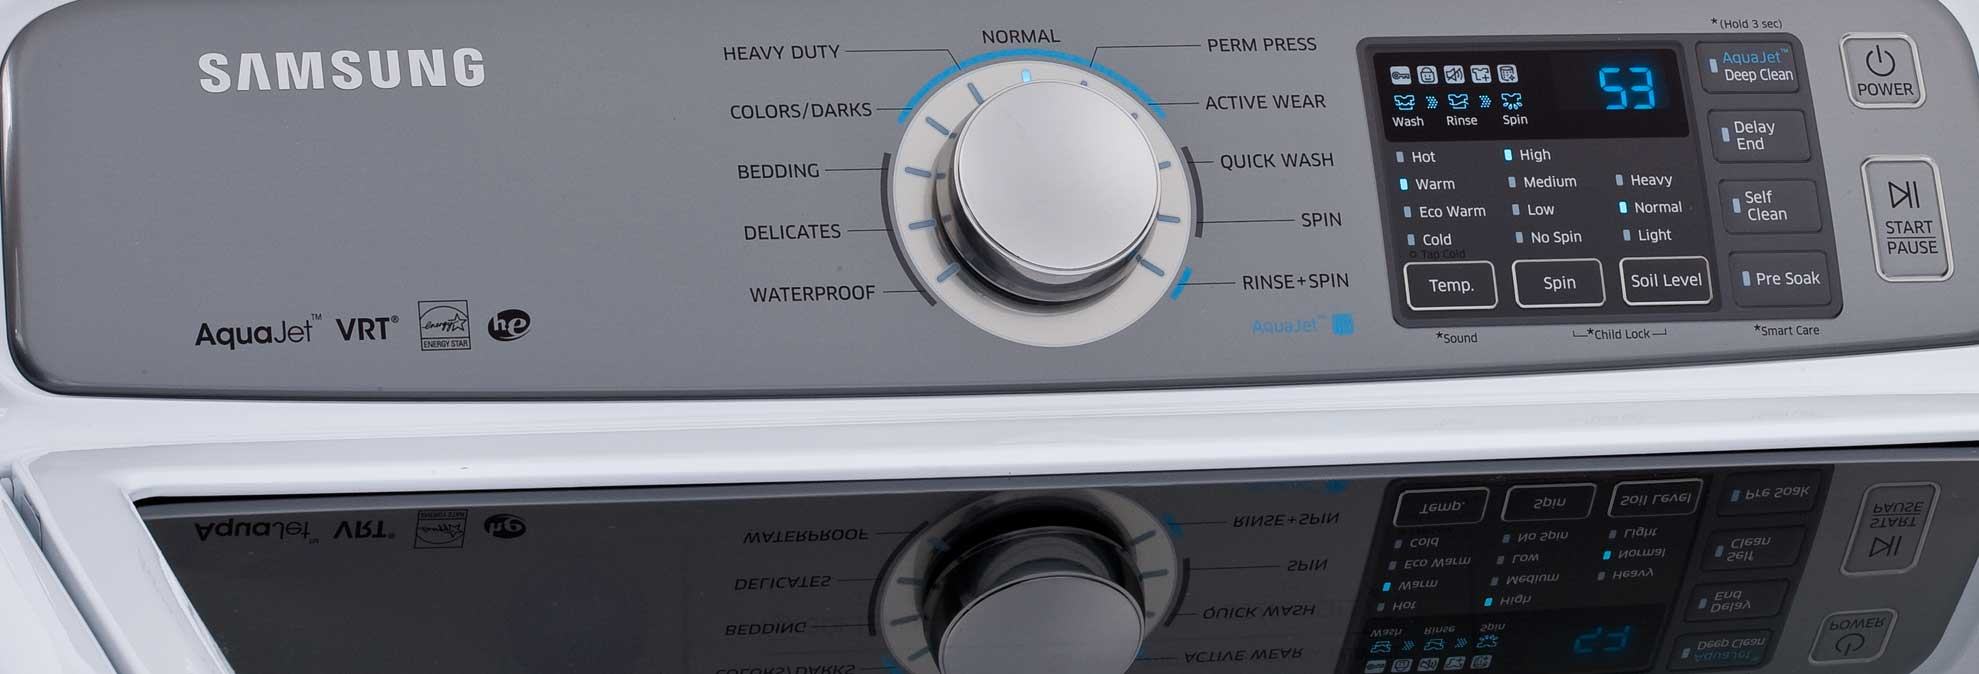 Samsung Recall Top-Loading Washing Machines - Consumer Reports